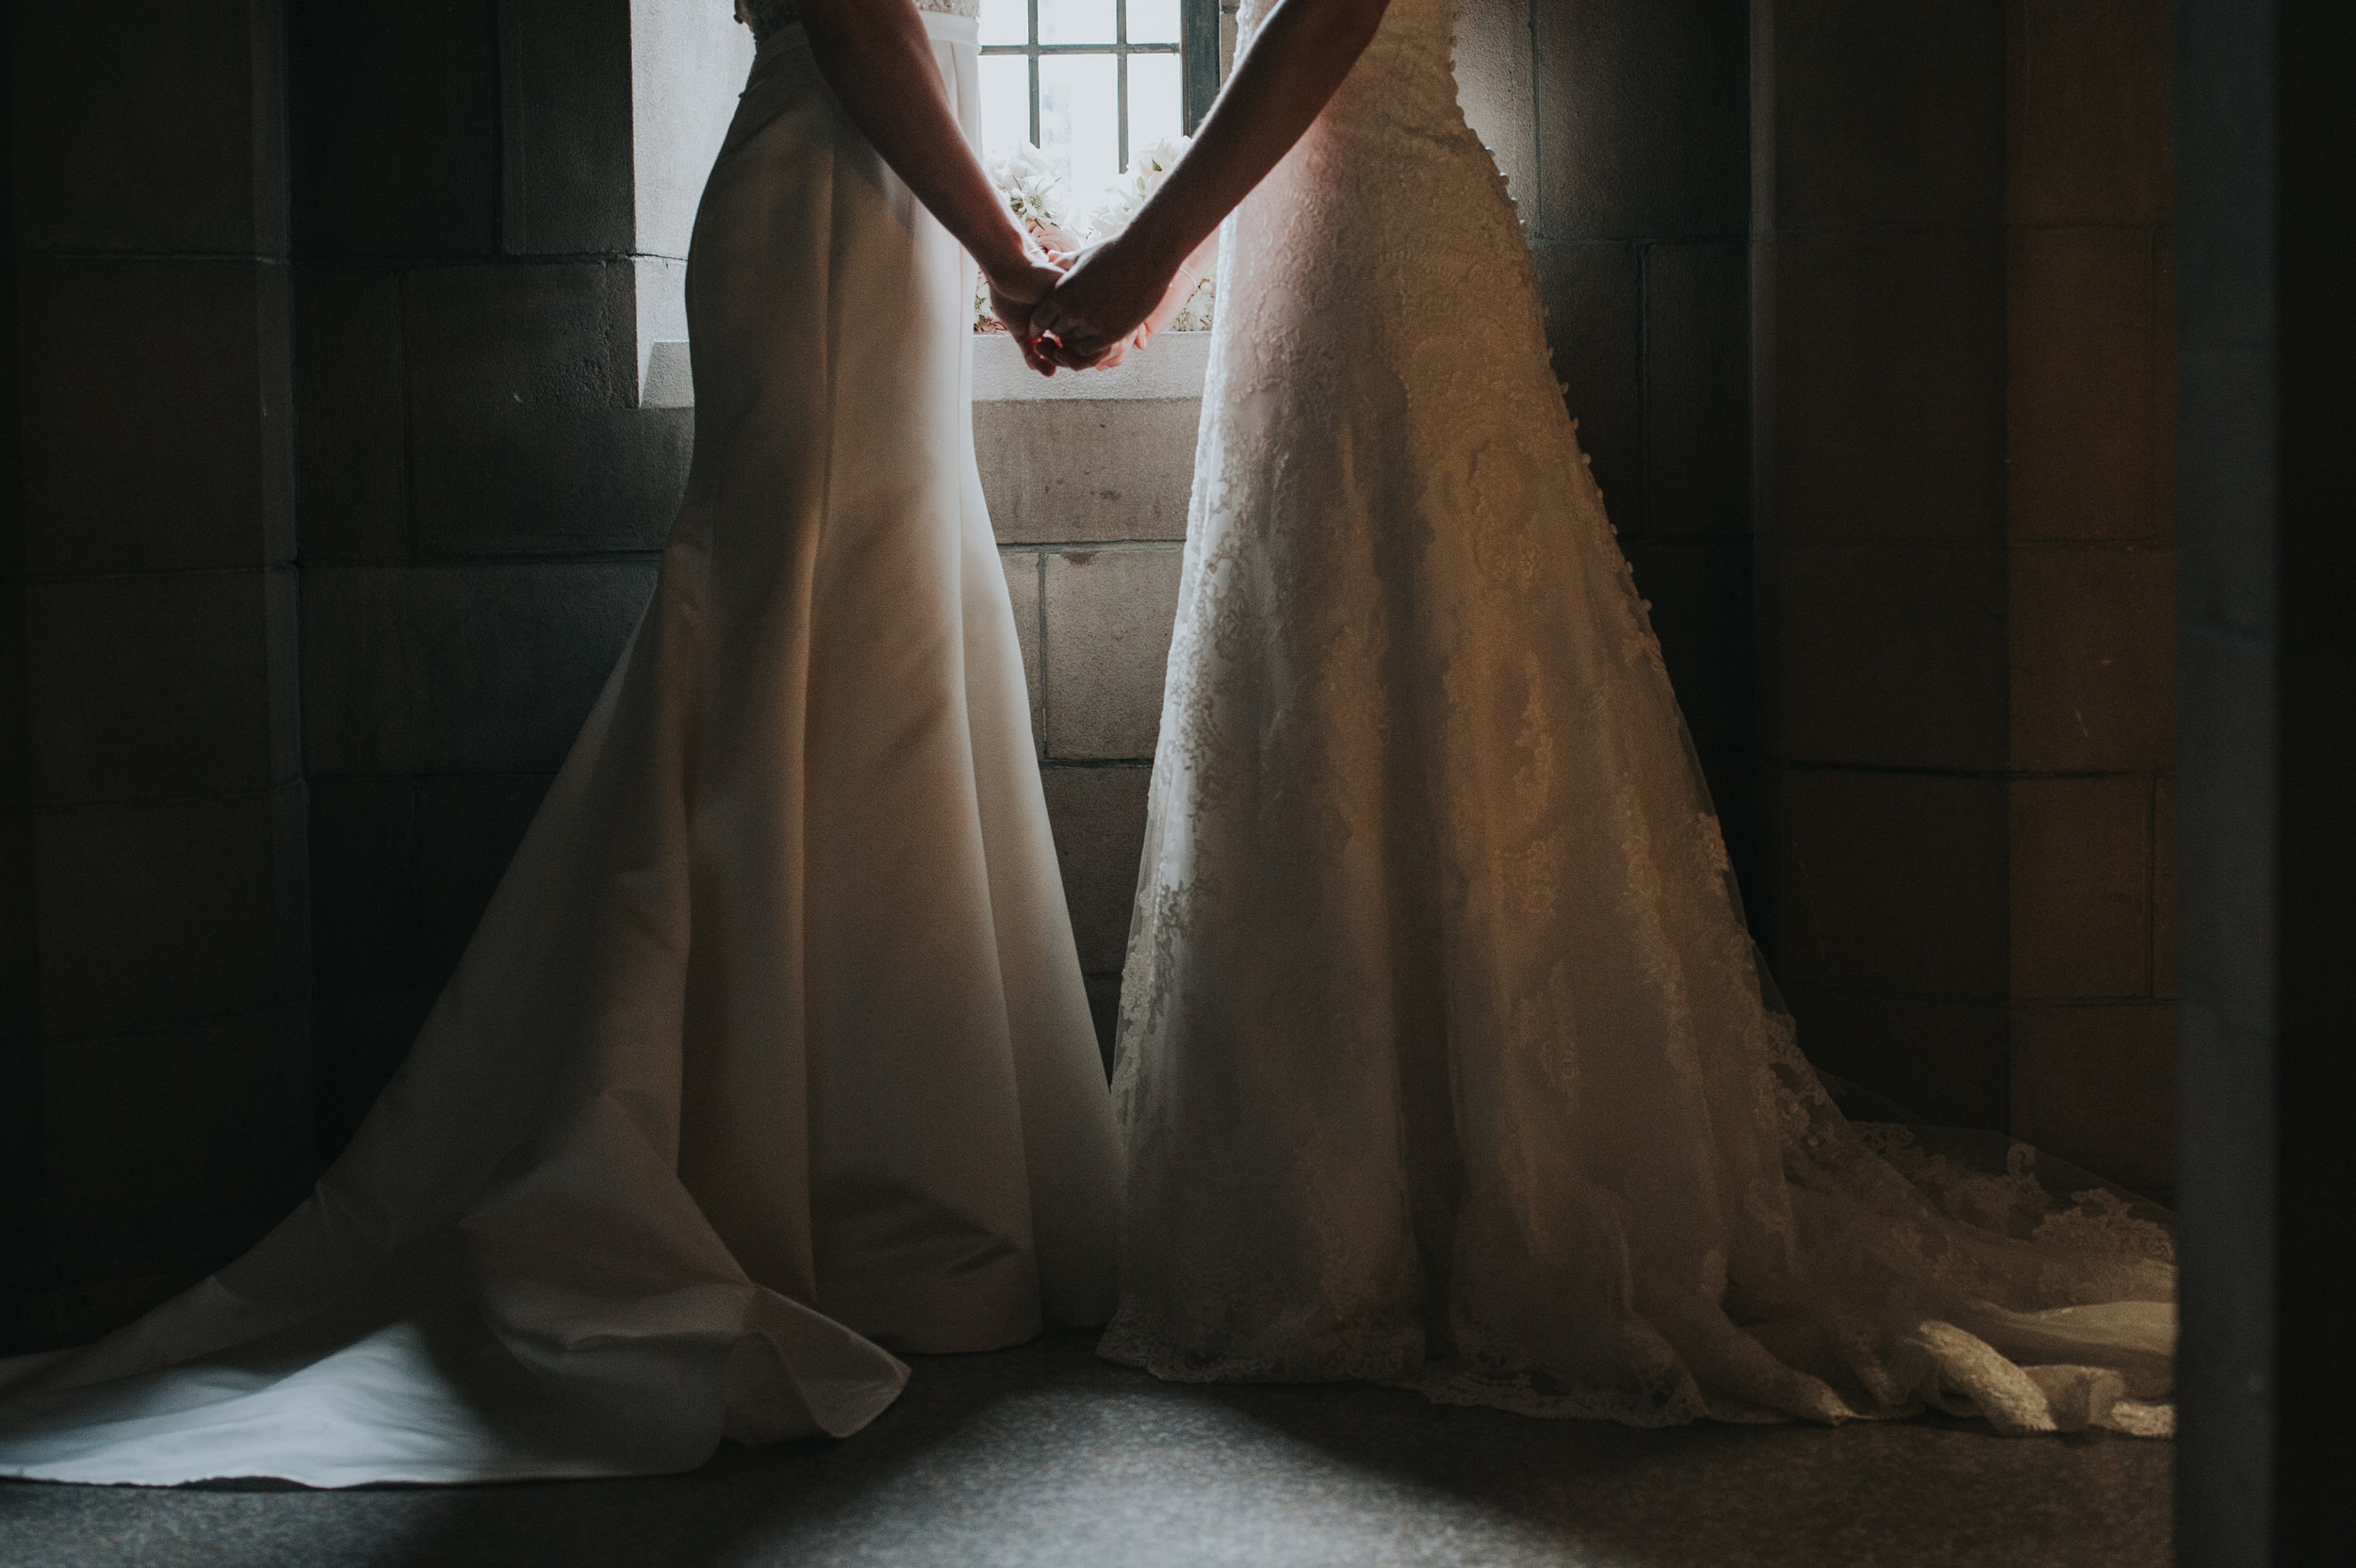 brides-holding-hands-knox-college-toronto-same-sex-wedding-willow-and-birch-photography-documentary-wedding-photographers.jpg